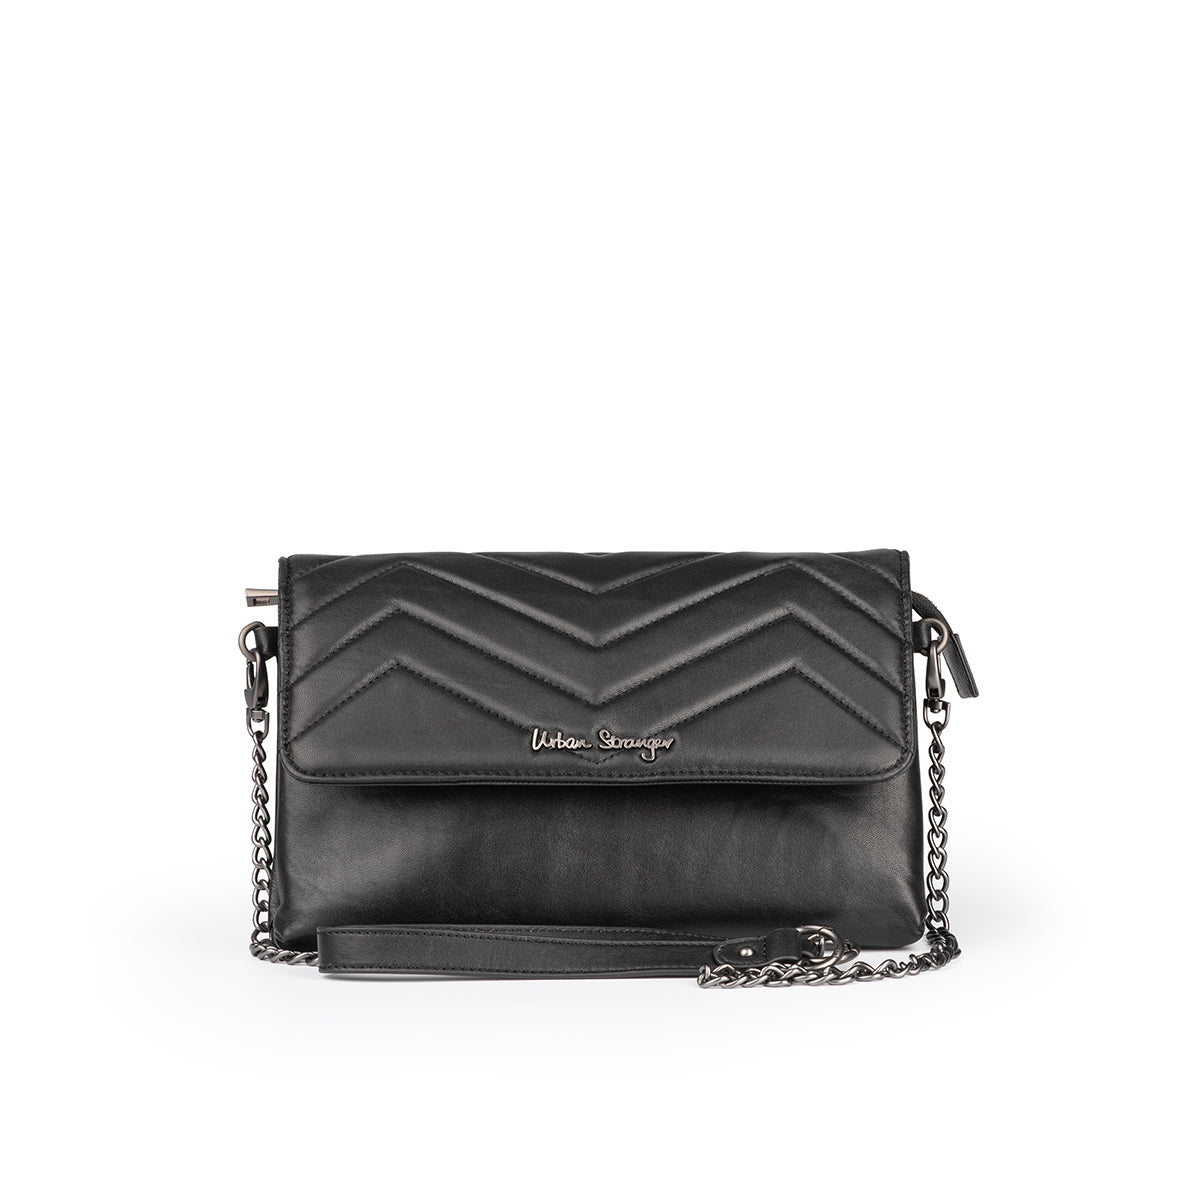 Leather Interchangeable Flap Bag